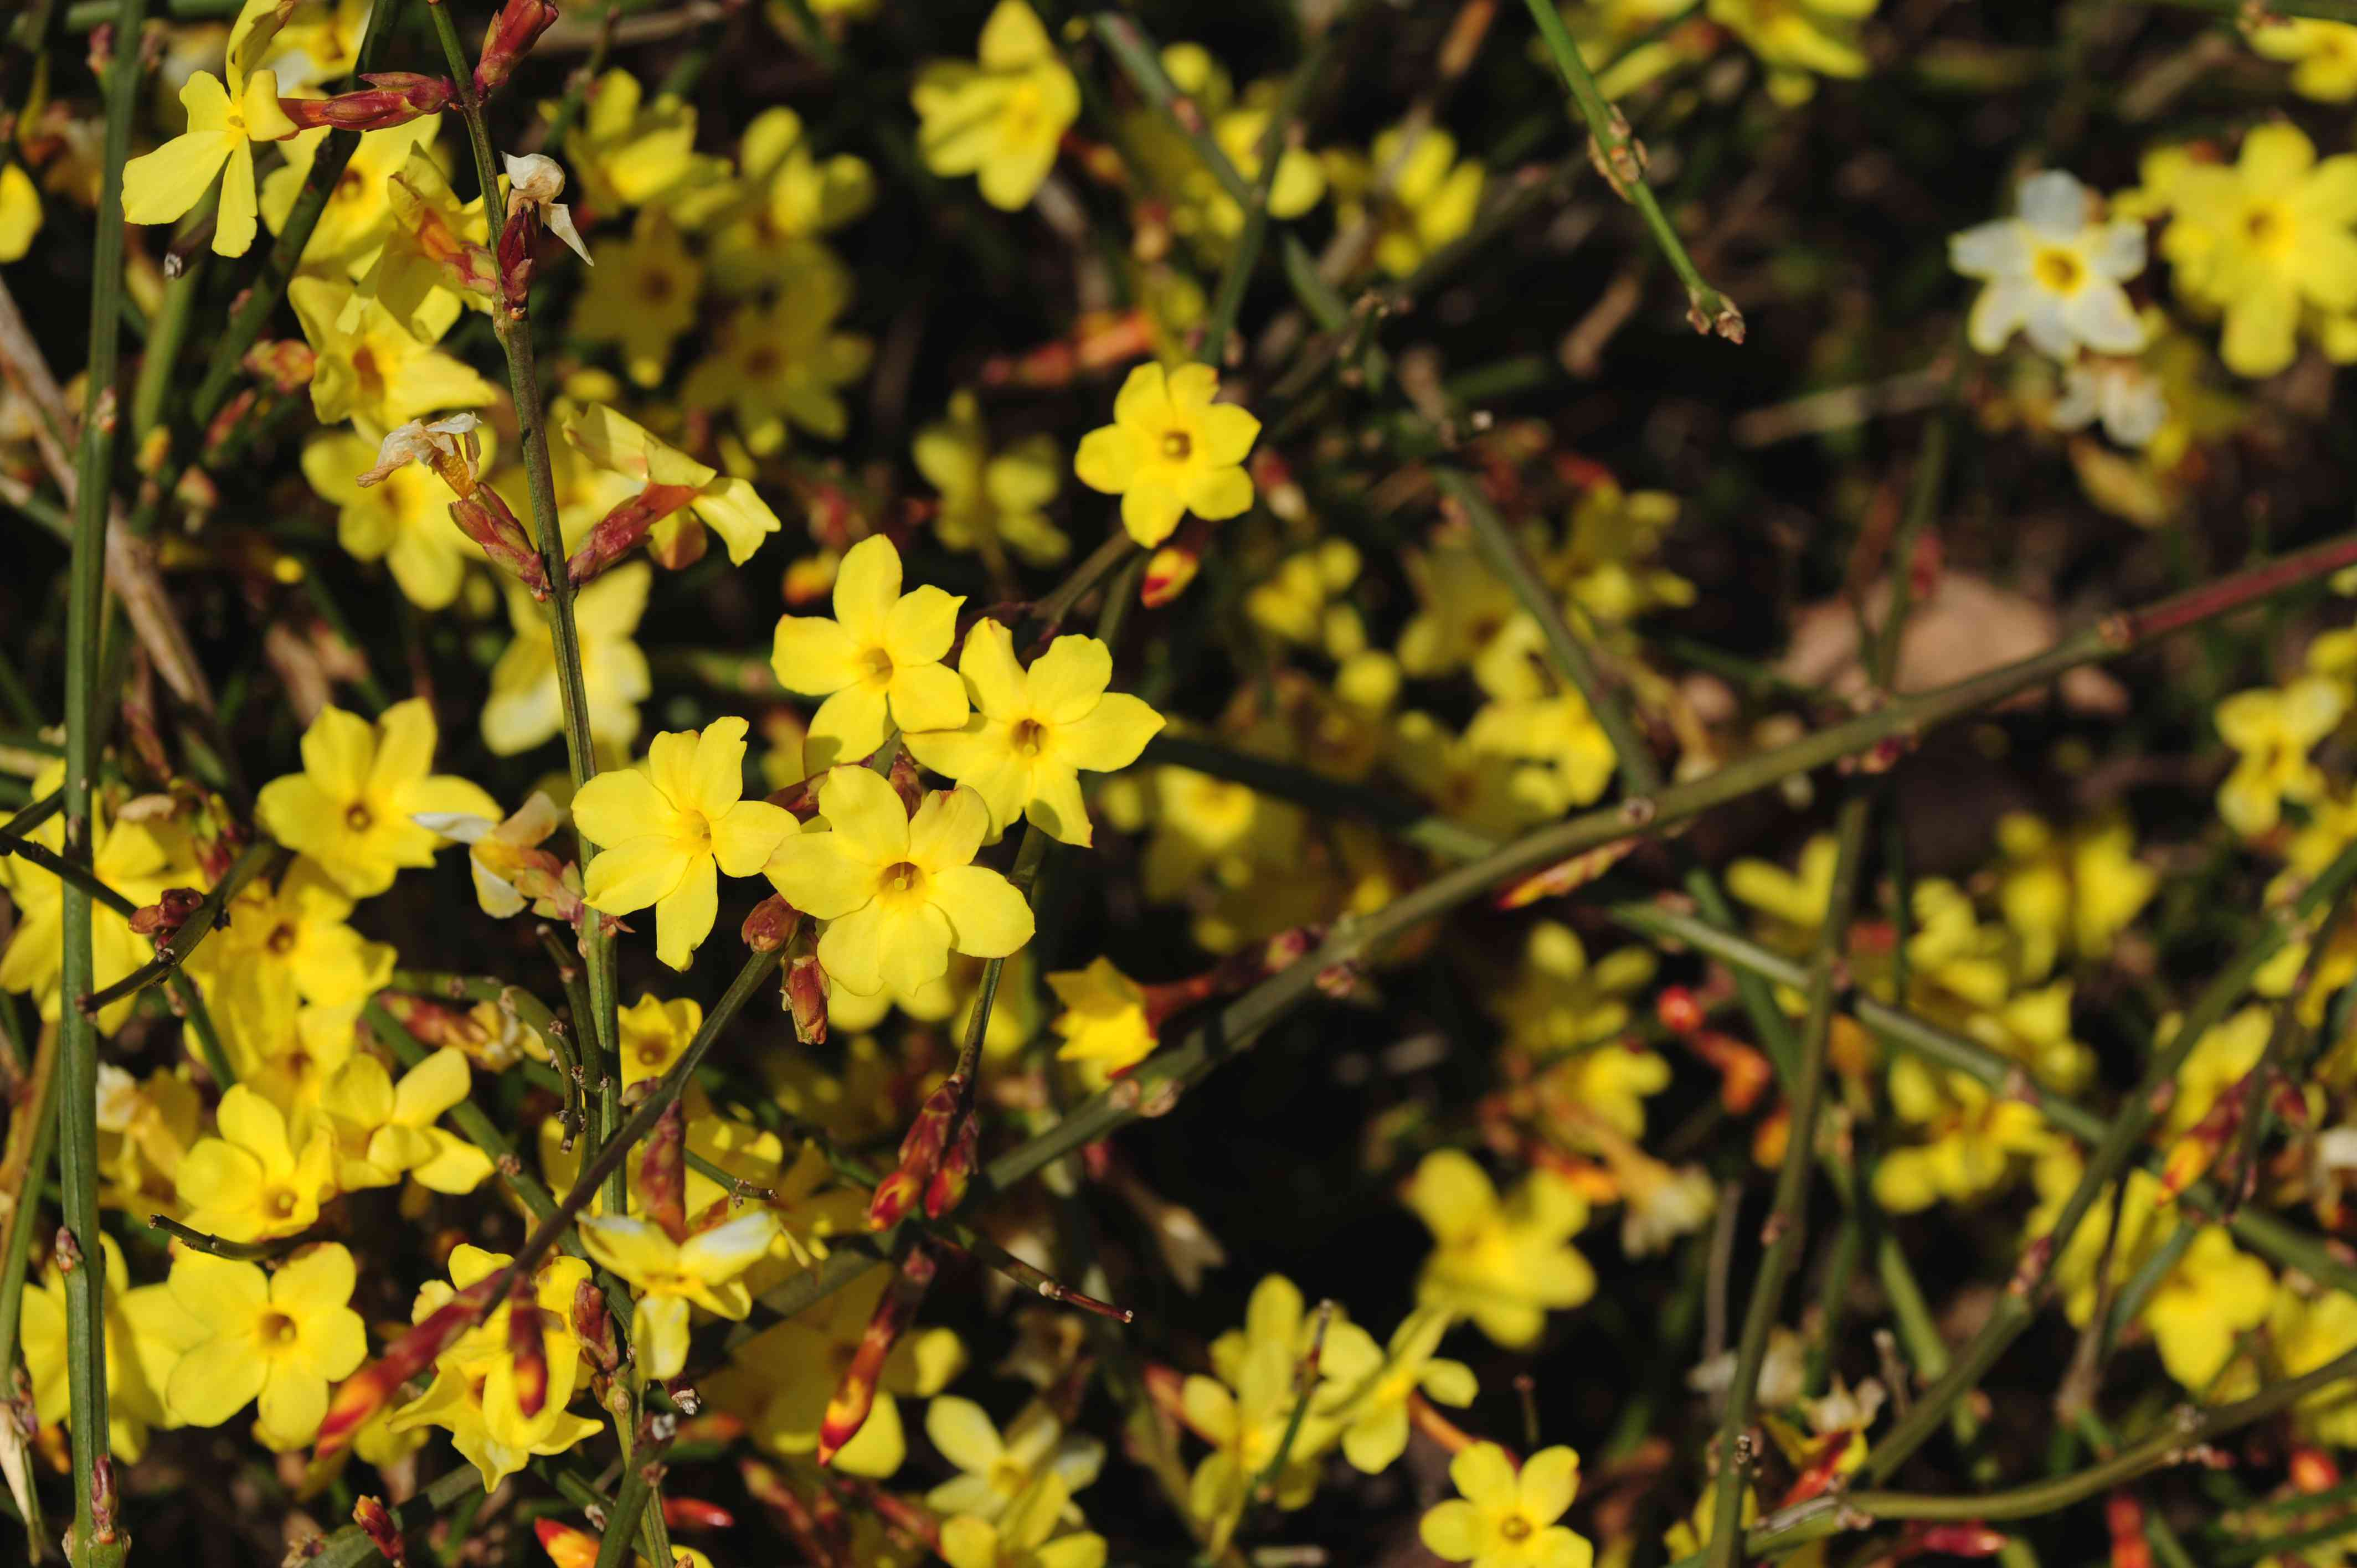 Winter jasmine vines with yellow flowers and buds